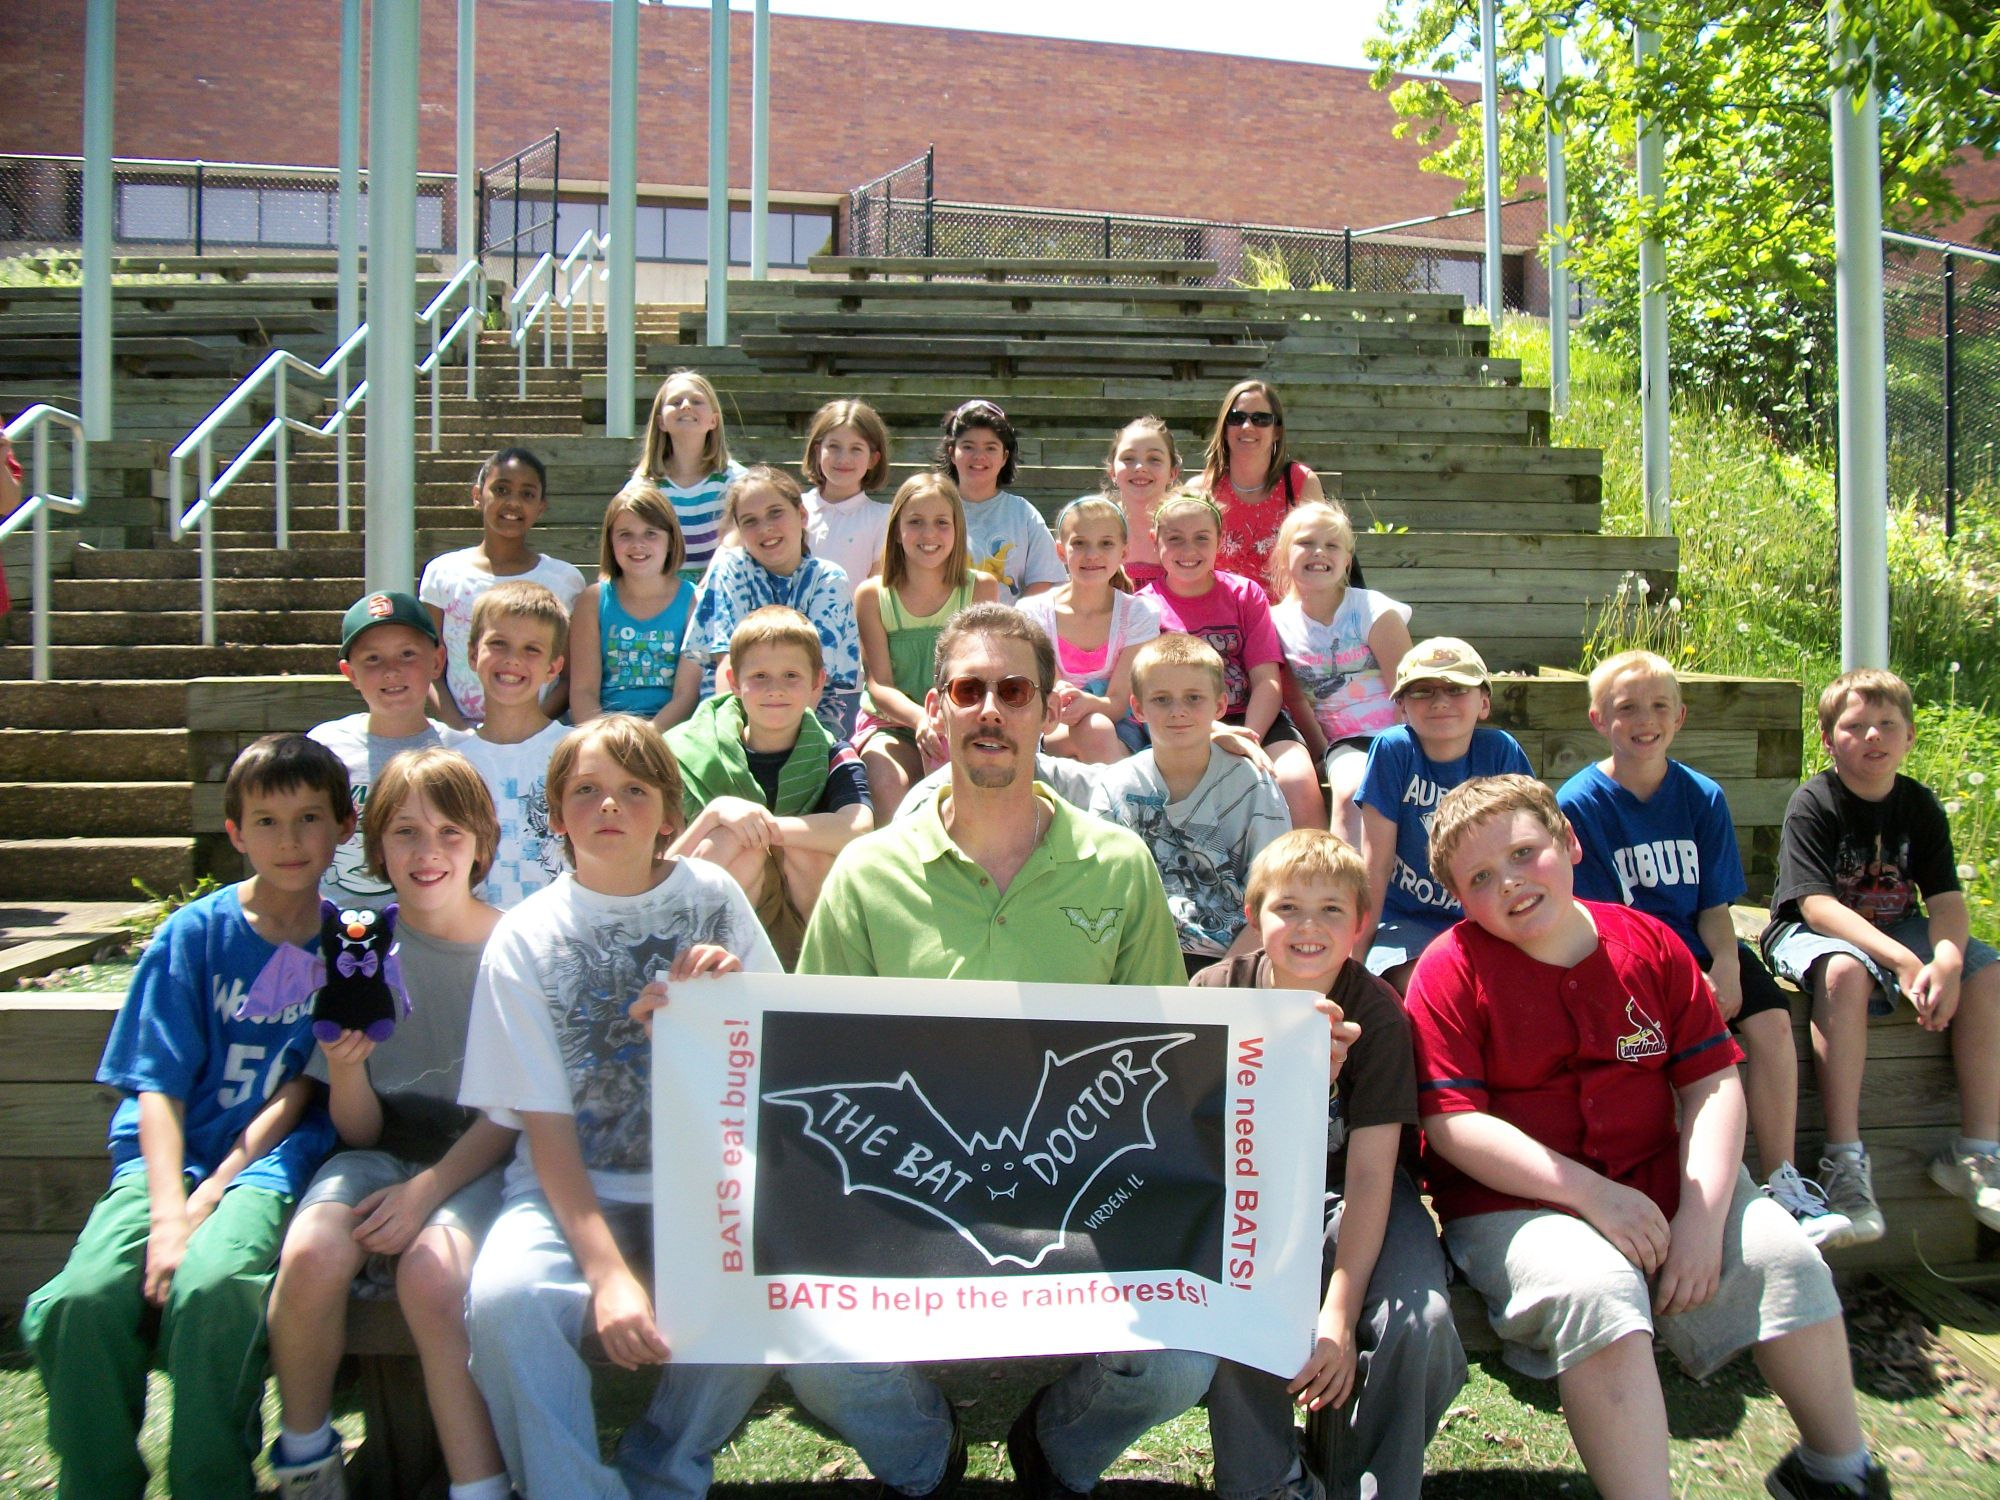 Dr. Austin with Auburn Elementary students at the 2010 IL EPA's Earth Stewardship Day following a 'Bats of Illinois' program.